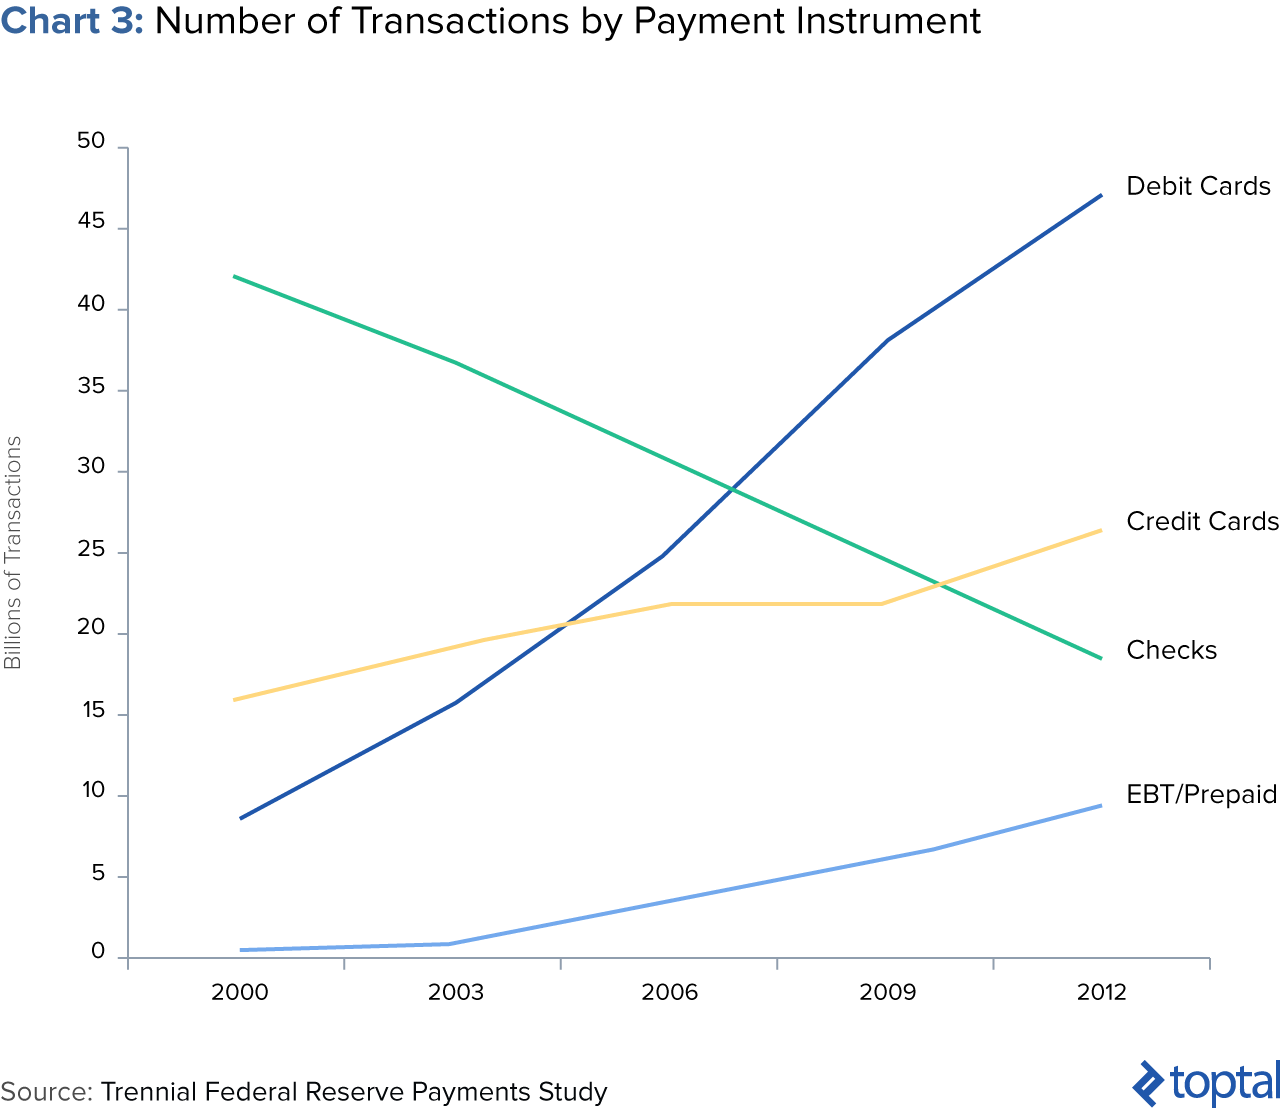 Image of Chart 3: Number of Transactions by Payment Instrument